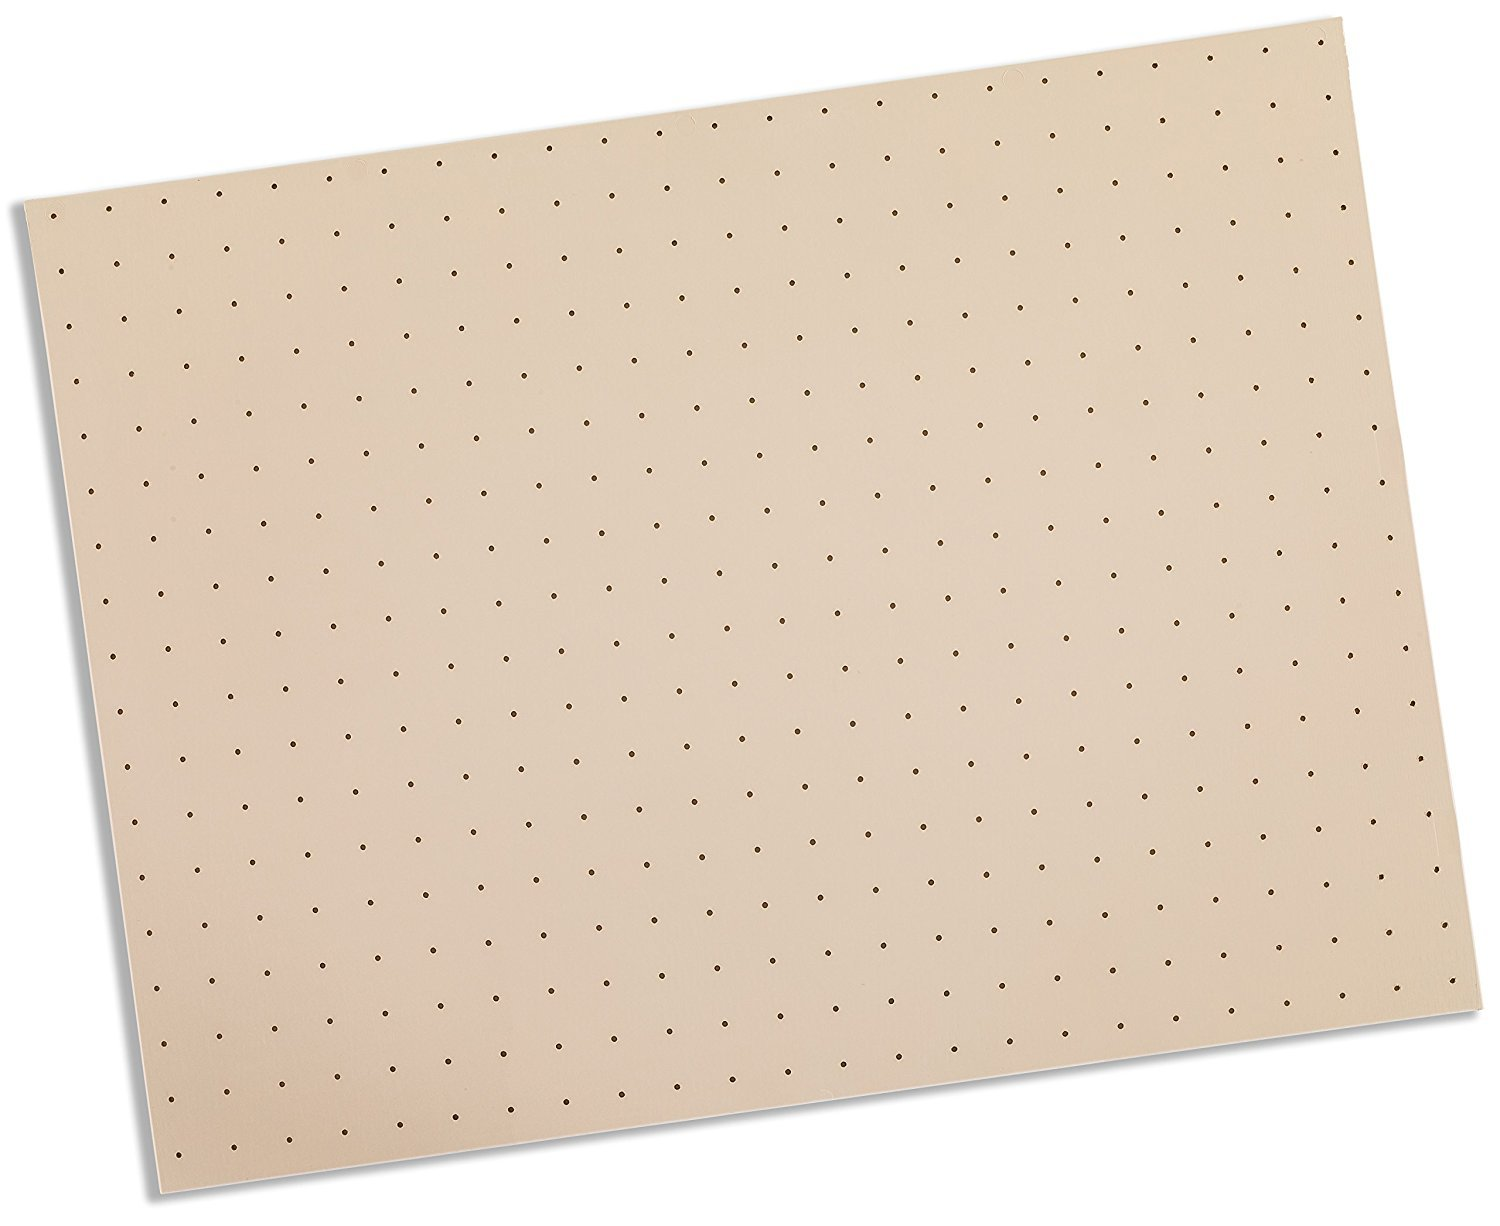 Rolyan Splinting Material Sheet, Tailor Splint, Beige, 1/8'' x 6'' x 9'', 1% Perforated, Single Sheet